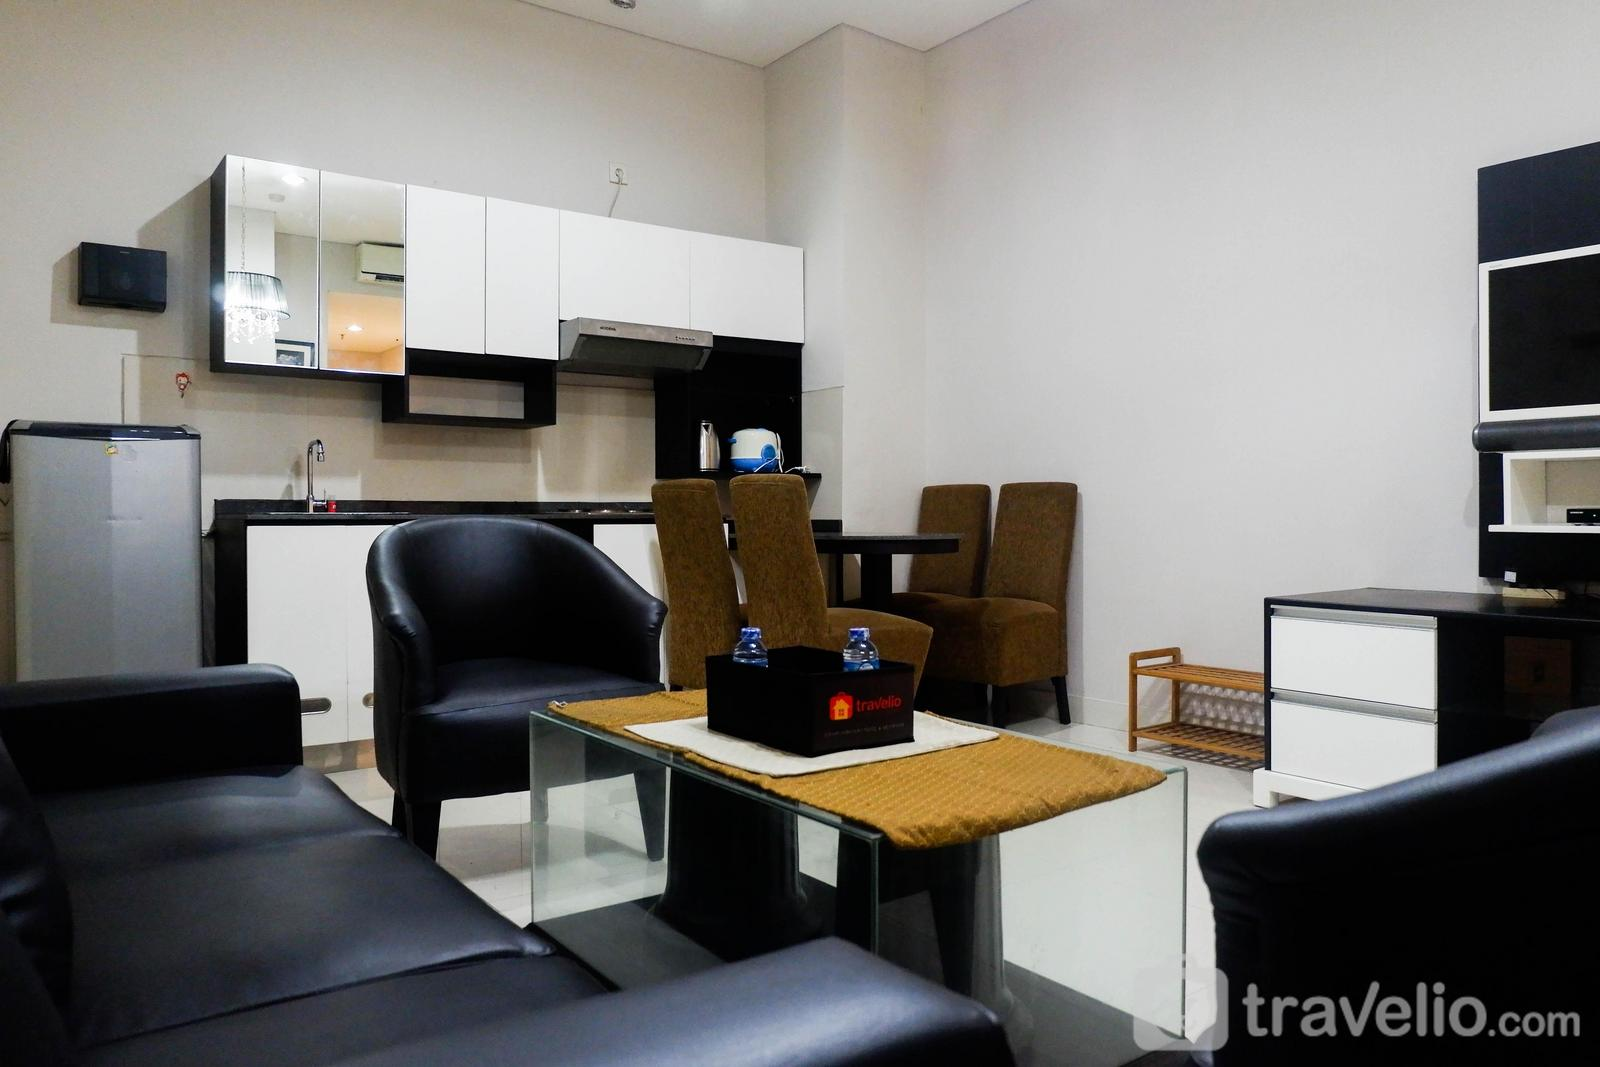 Trillium Residence - Strategic 2BR Apartment at Trillium Residence By Travelio